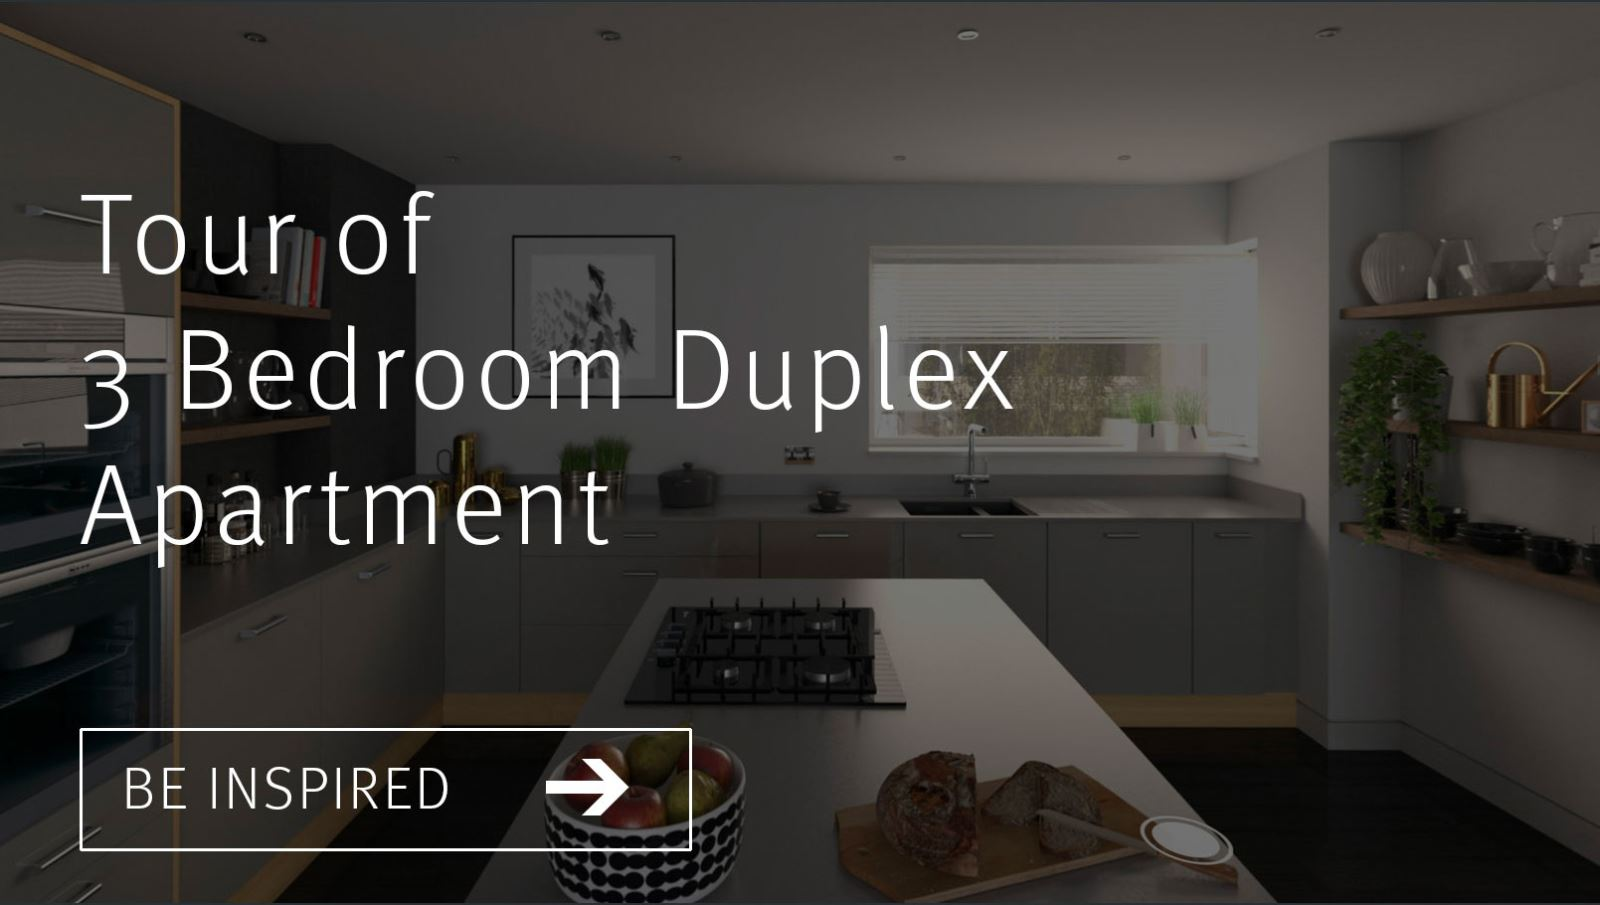 Tour of 3 bedroom apartment